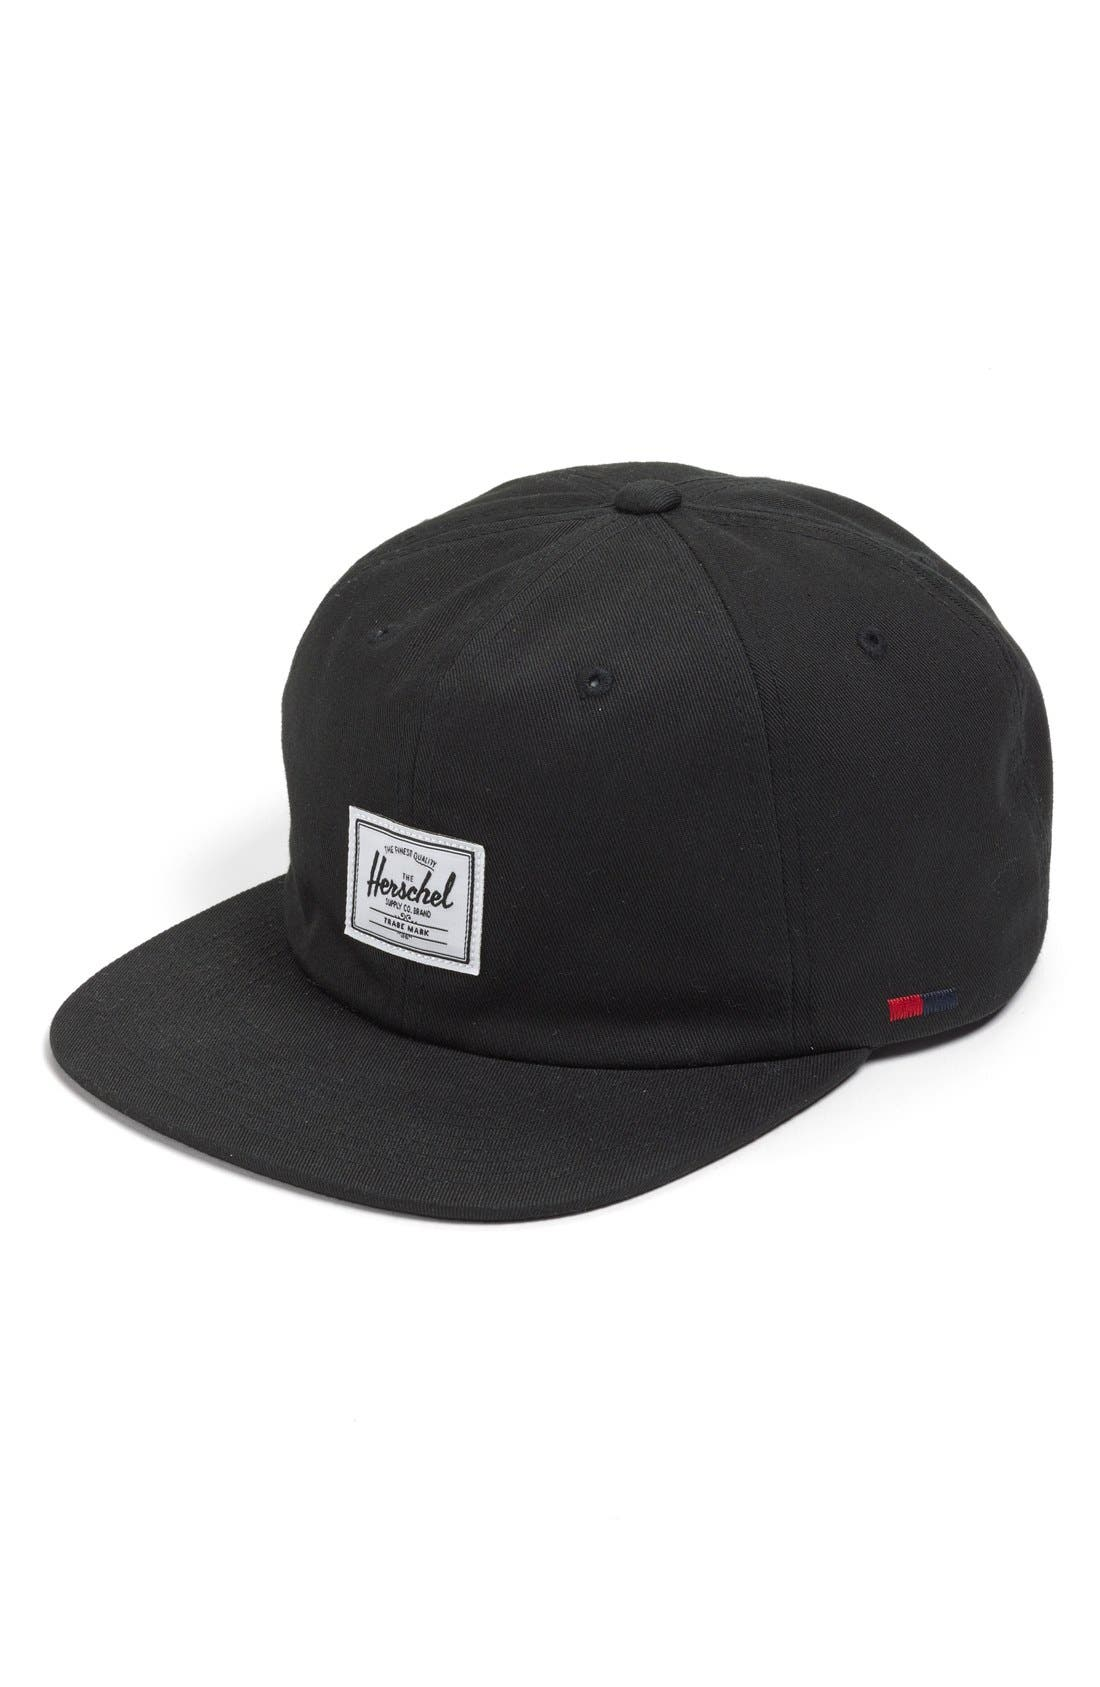 Herschel Supply Co. 'Albert' Ball Cap